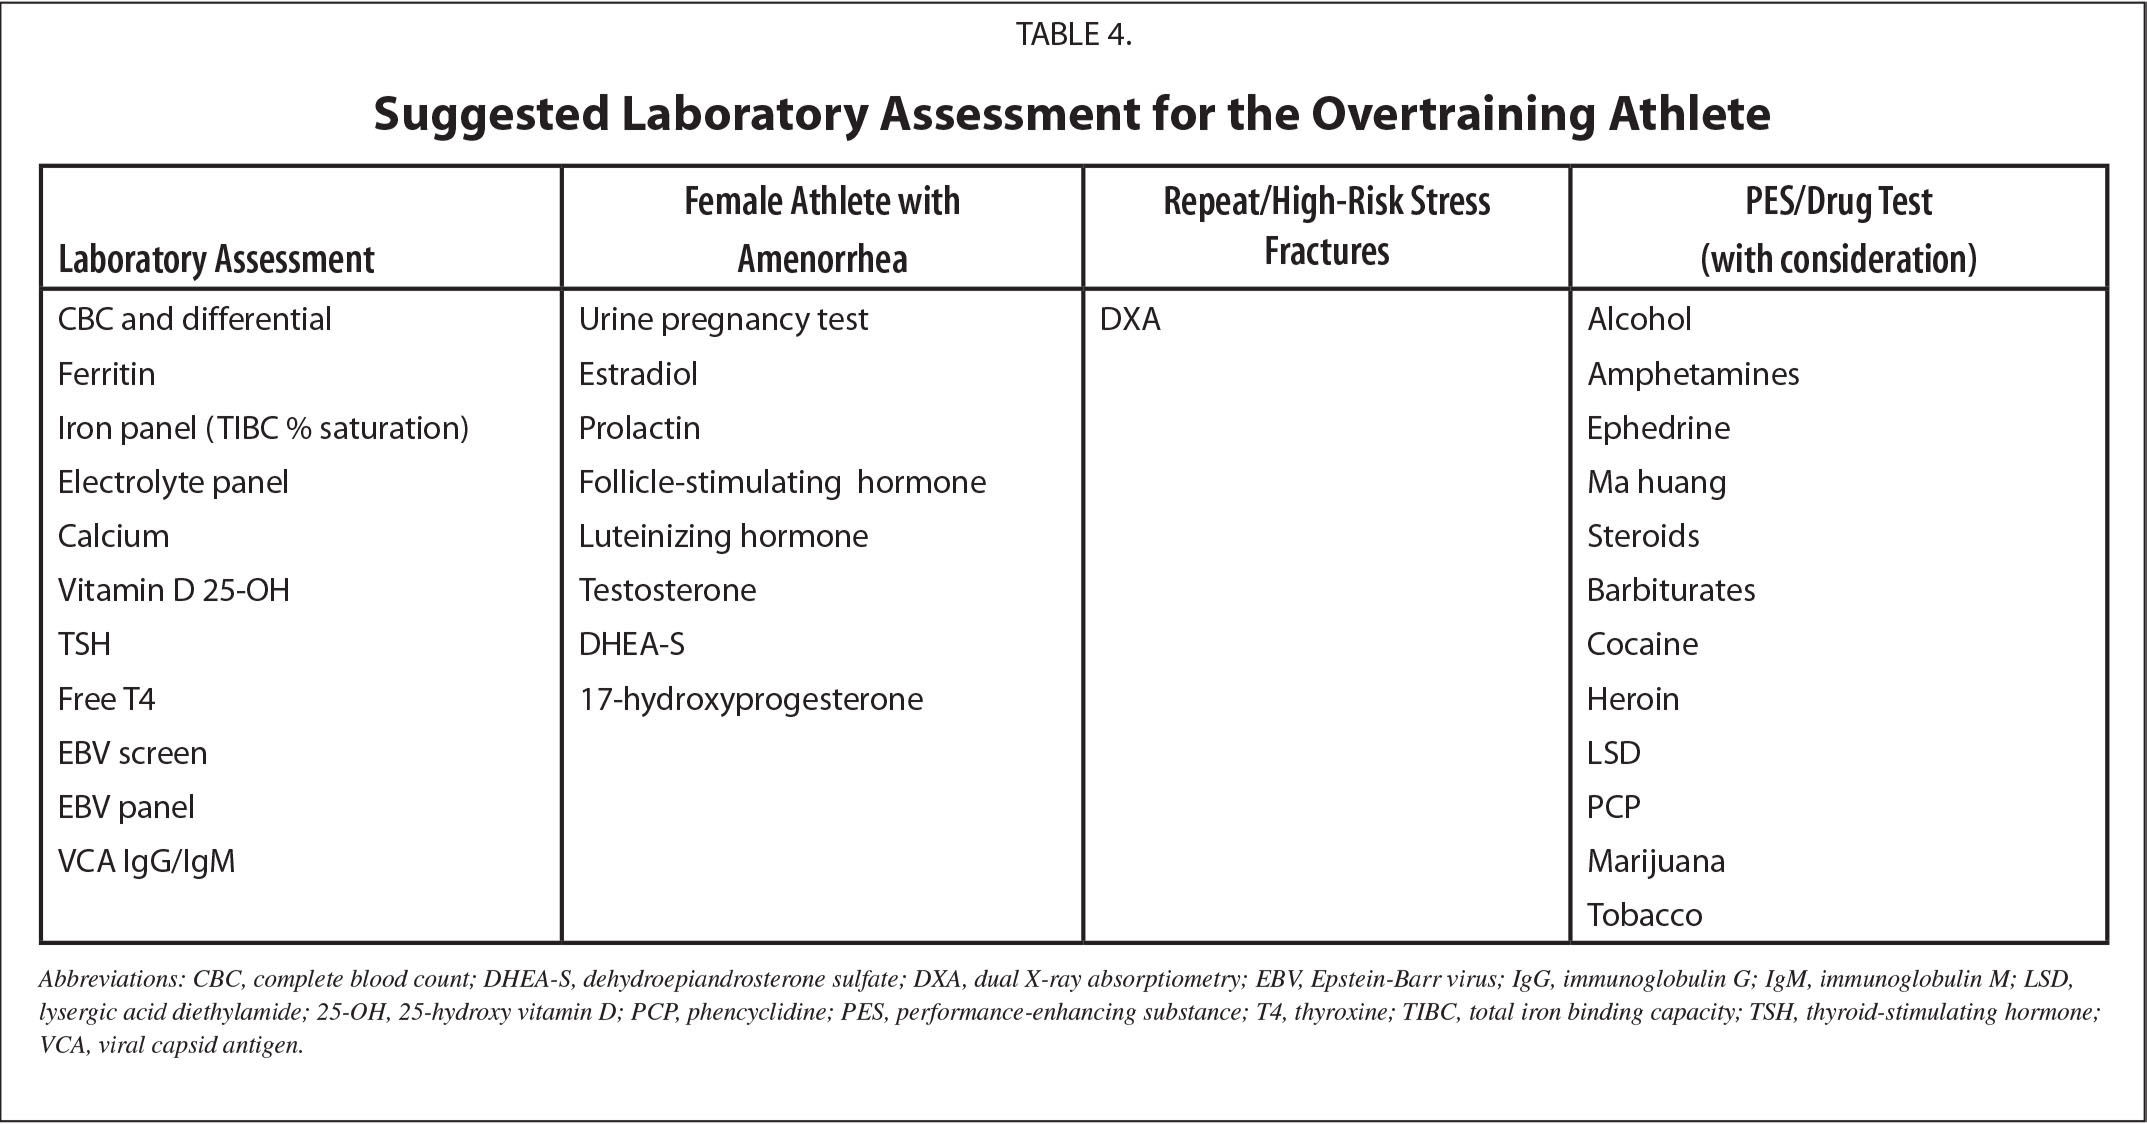 Suggested Laboratory Assessment for the Overtraining Athlete